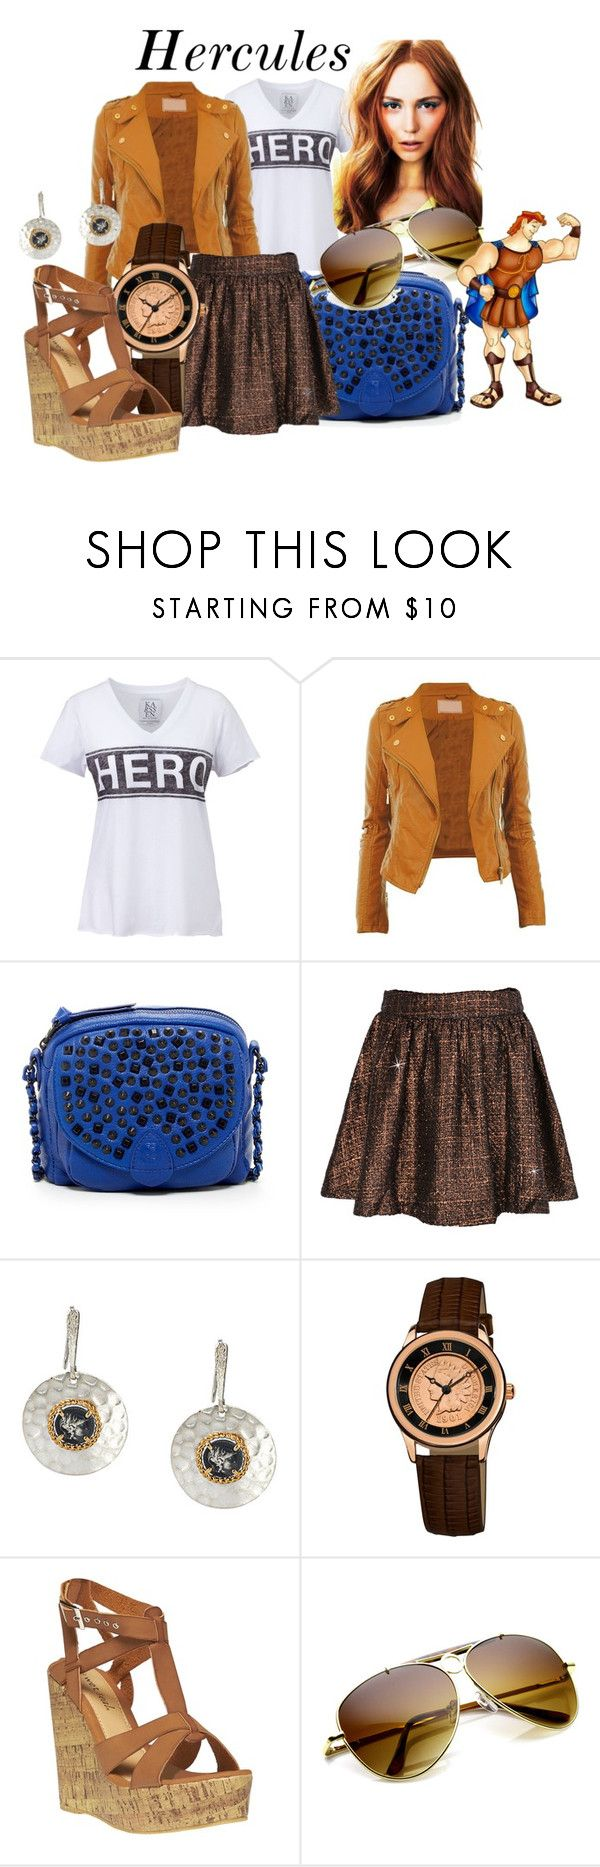 """Hercules"" by kyalvarez ❤ liked on Polyvore featuring Zoe Karssen, The Sak, August Steiner, Wet Seal, Disney, Fall, hero, disney and hercules"